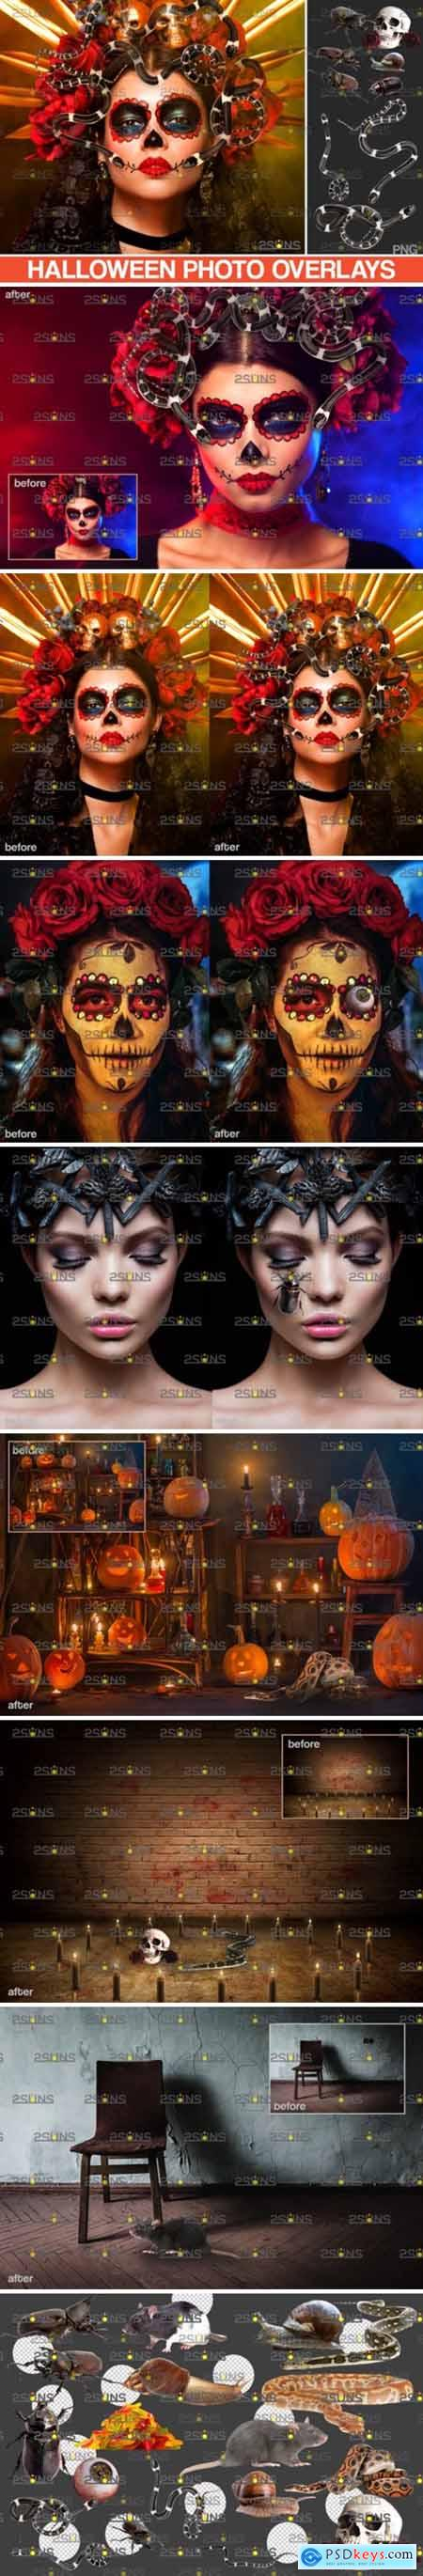 Photoshop Overlay Halloween Clipart V13 5023606